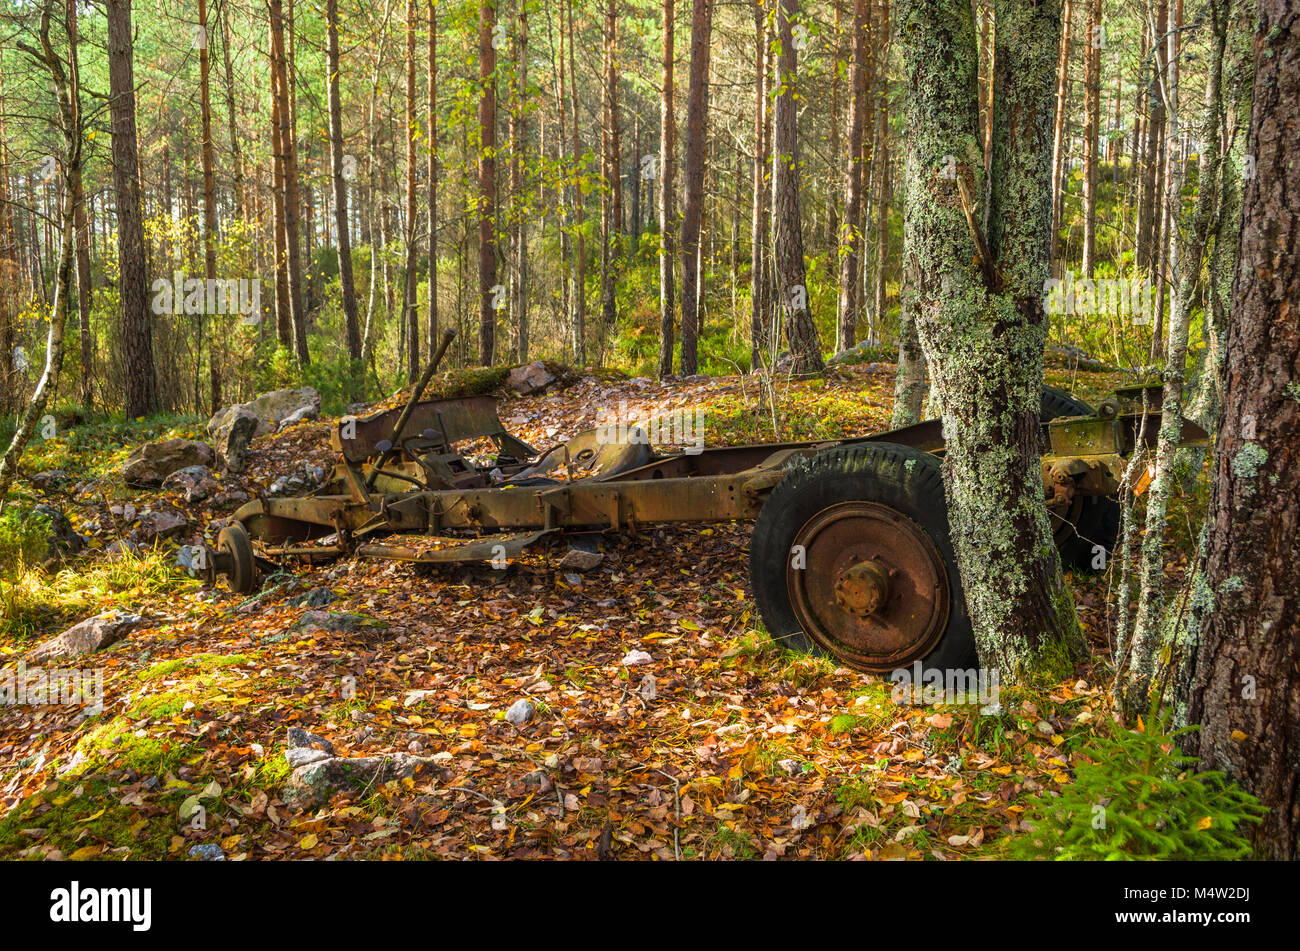 Remains of old ancient car wreck in area of mining activity, Naturstien, Evje, Norway. - Stock Image